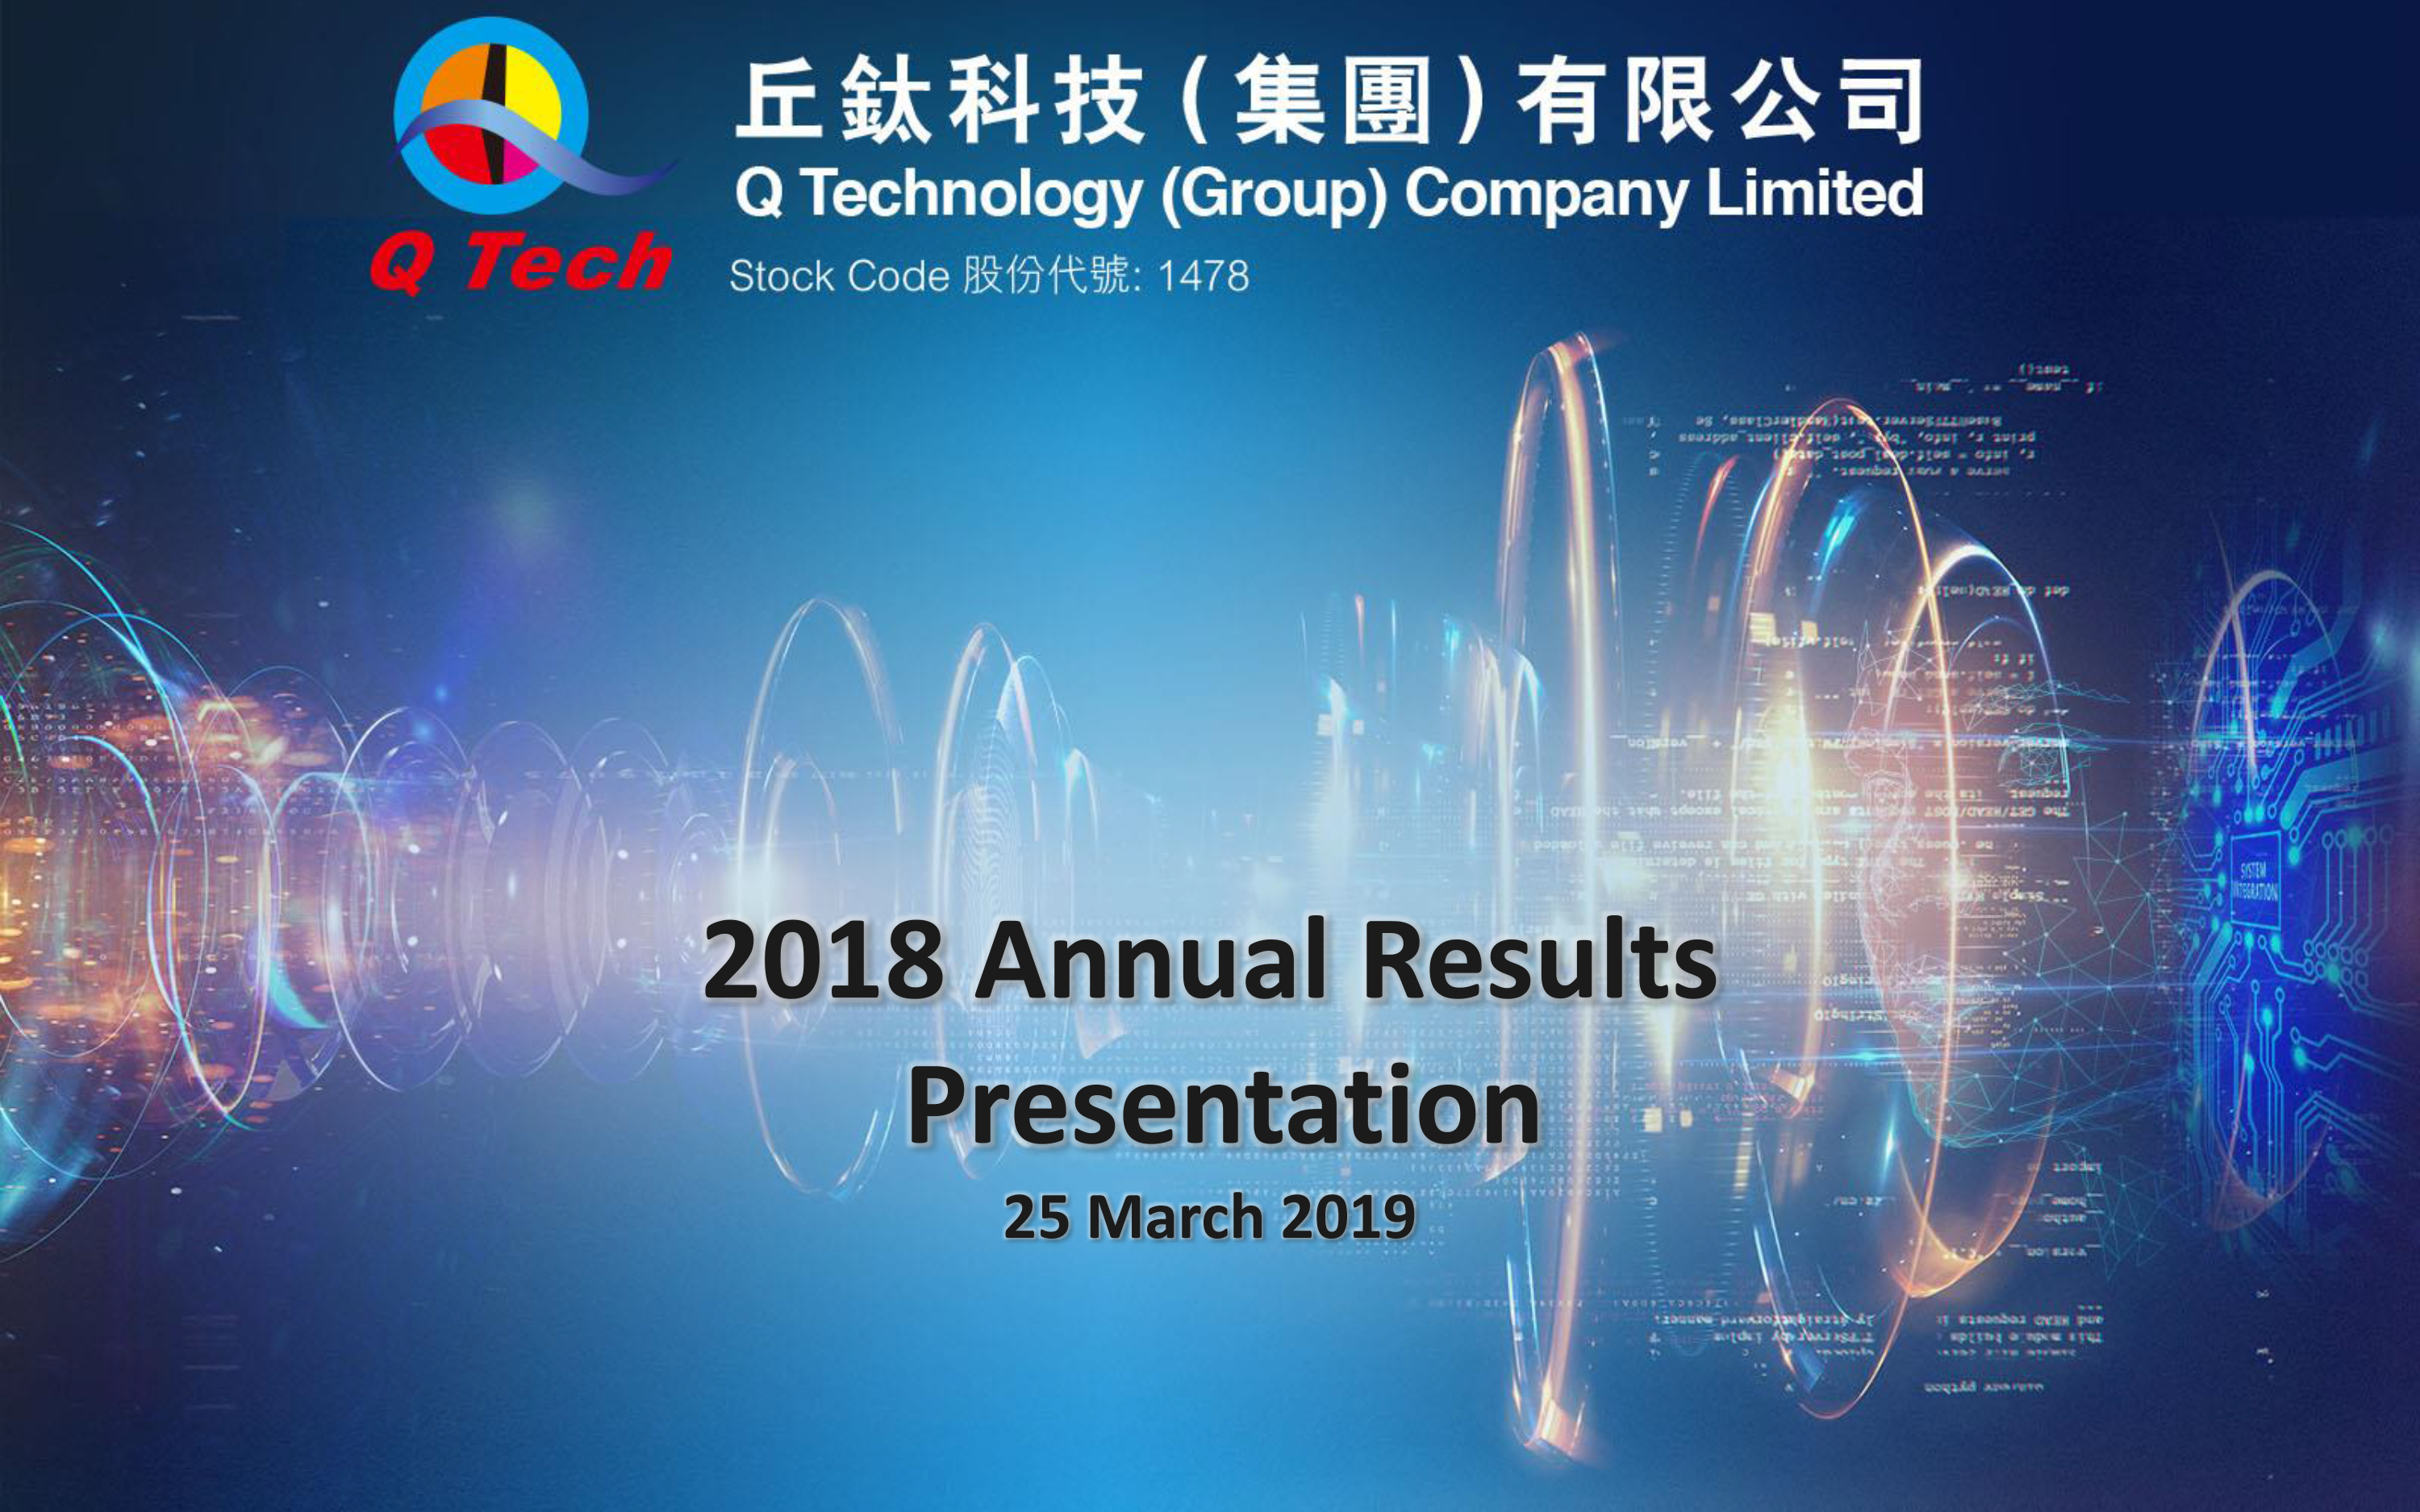 Annual Results Presentation of 2018